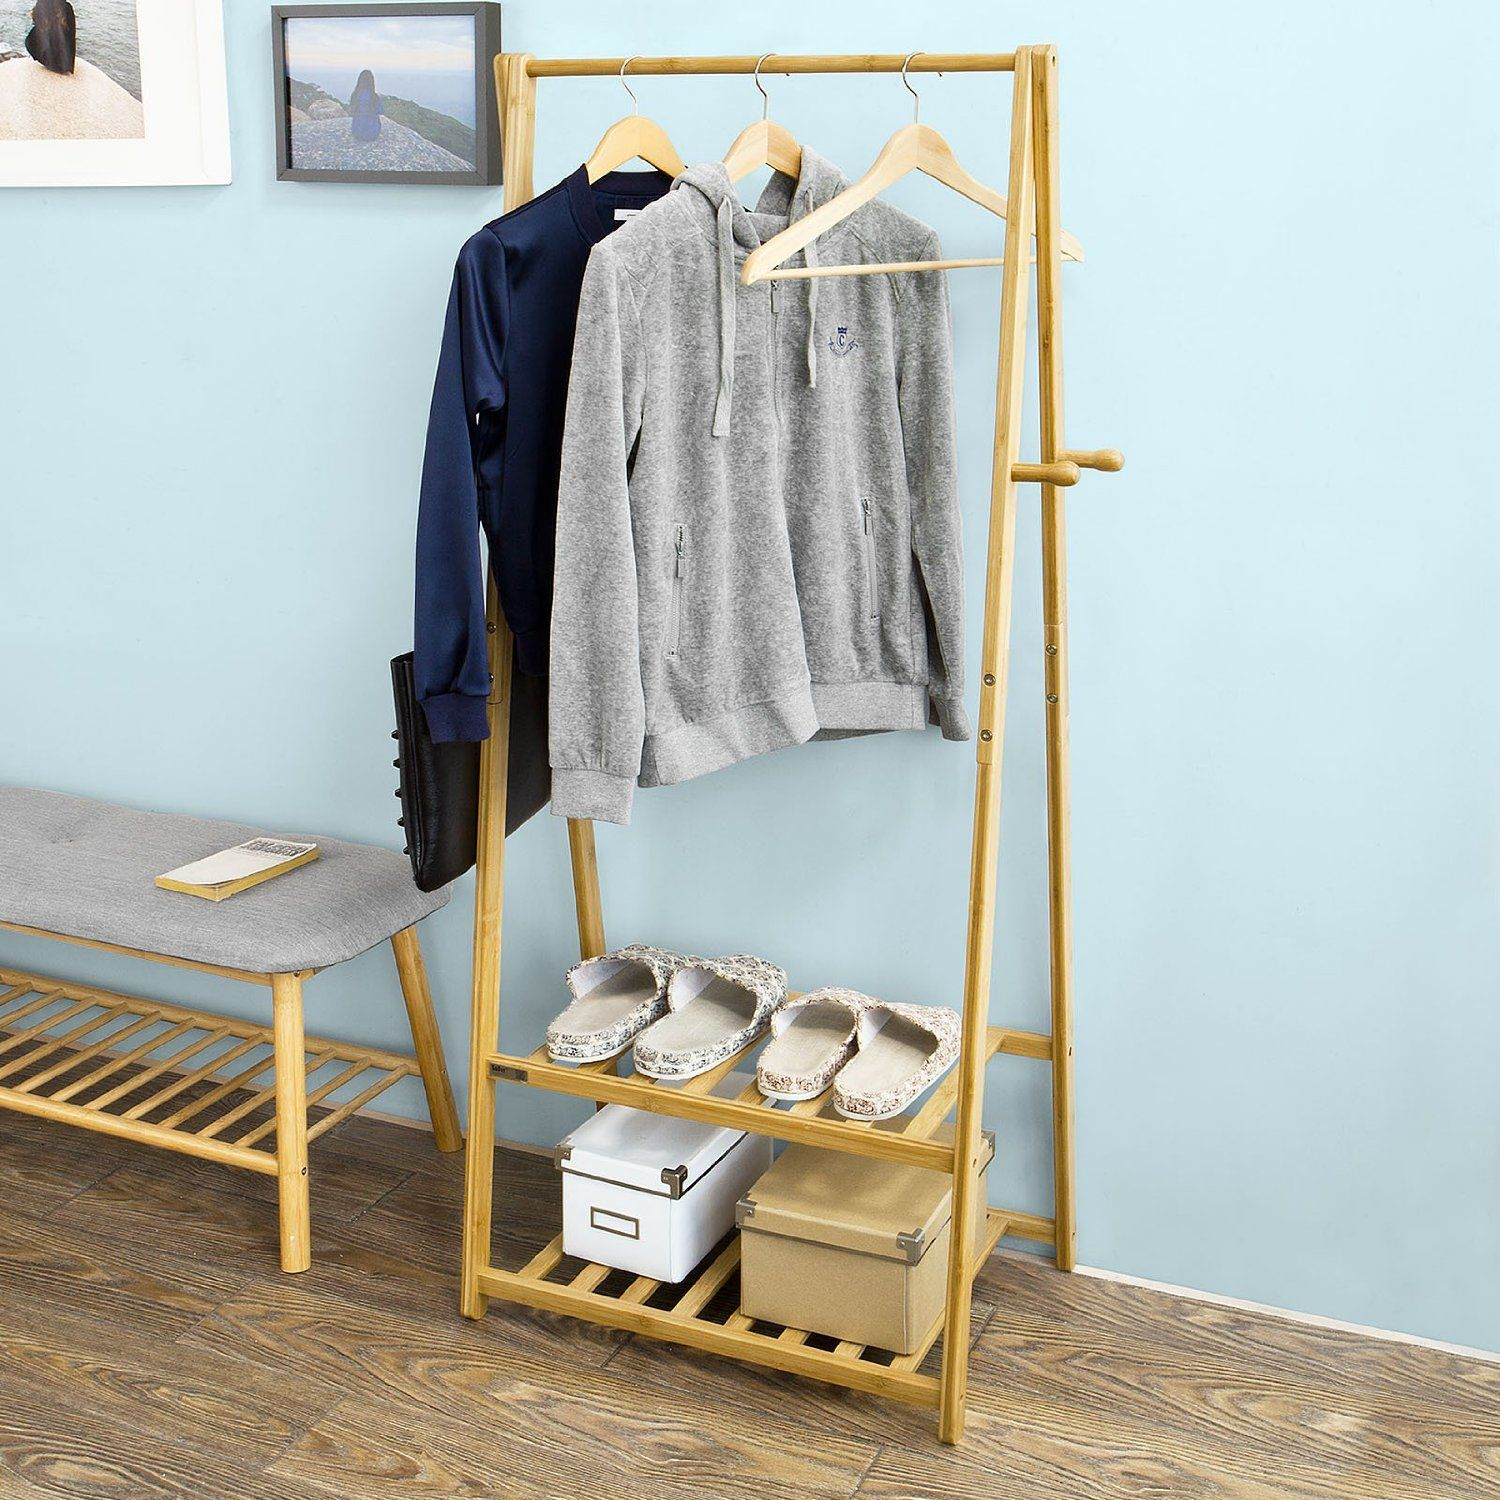 amazon target garment of whitmor shop racks home rack spacemaker freestanding and size holder homcom free clothes full hanger stand w standing clothing com wheels kitchen shelves